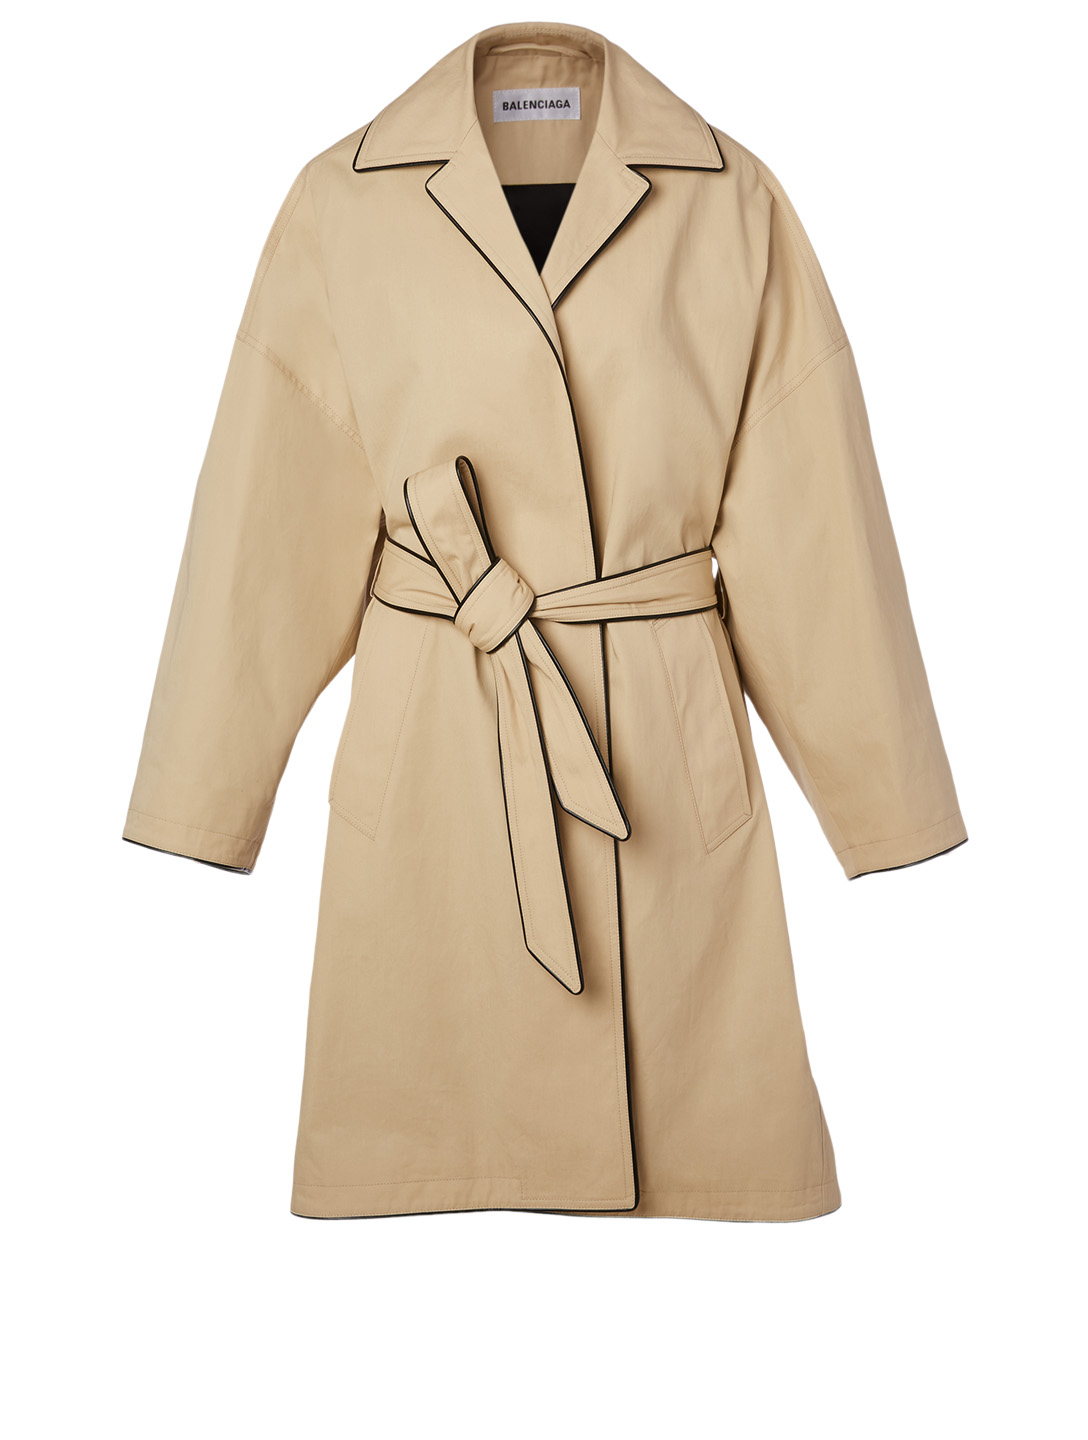 BALENCIAGA Cotton Cocoon Coat Women's Beige